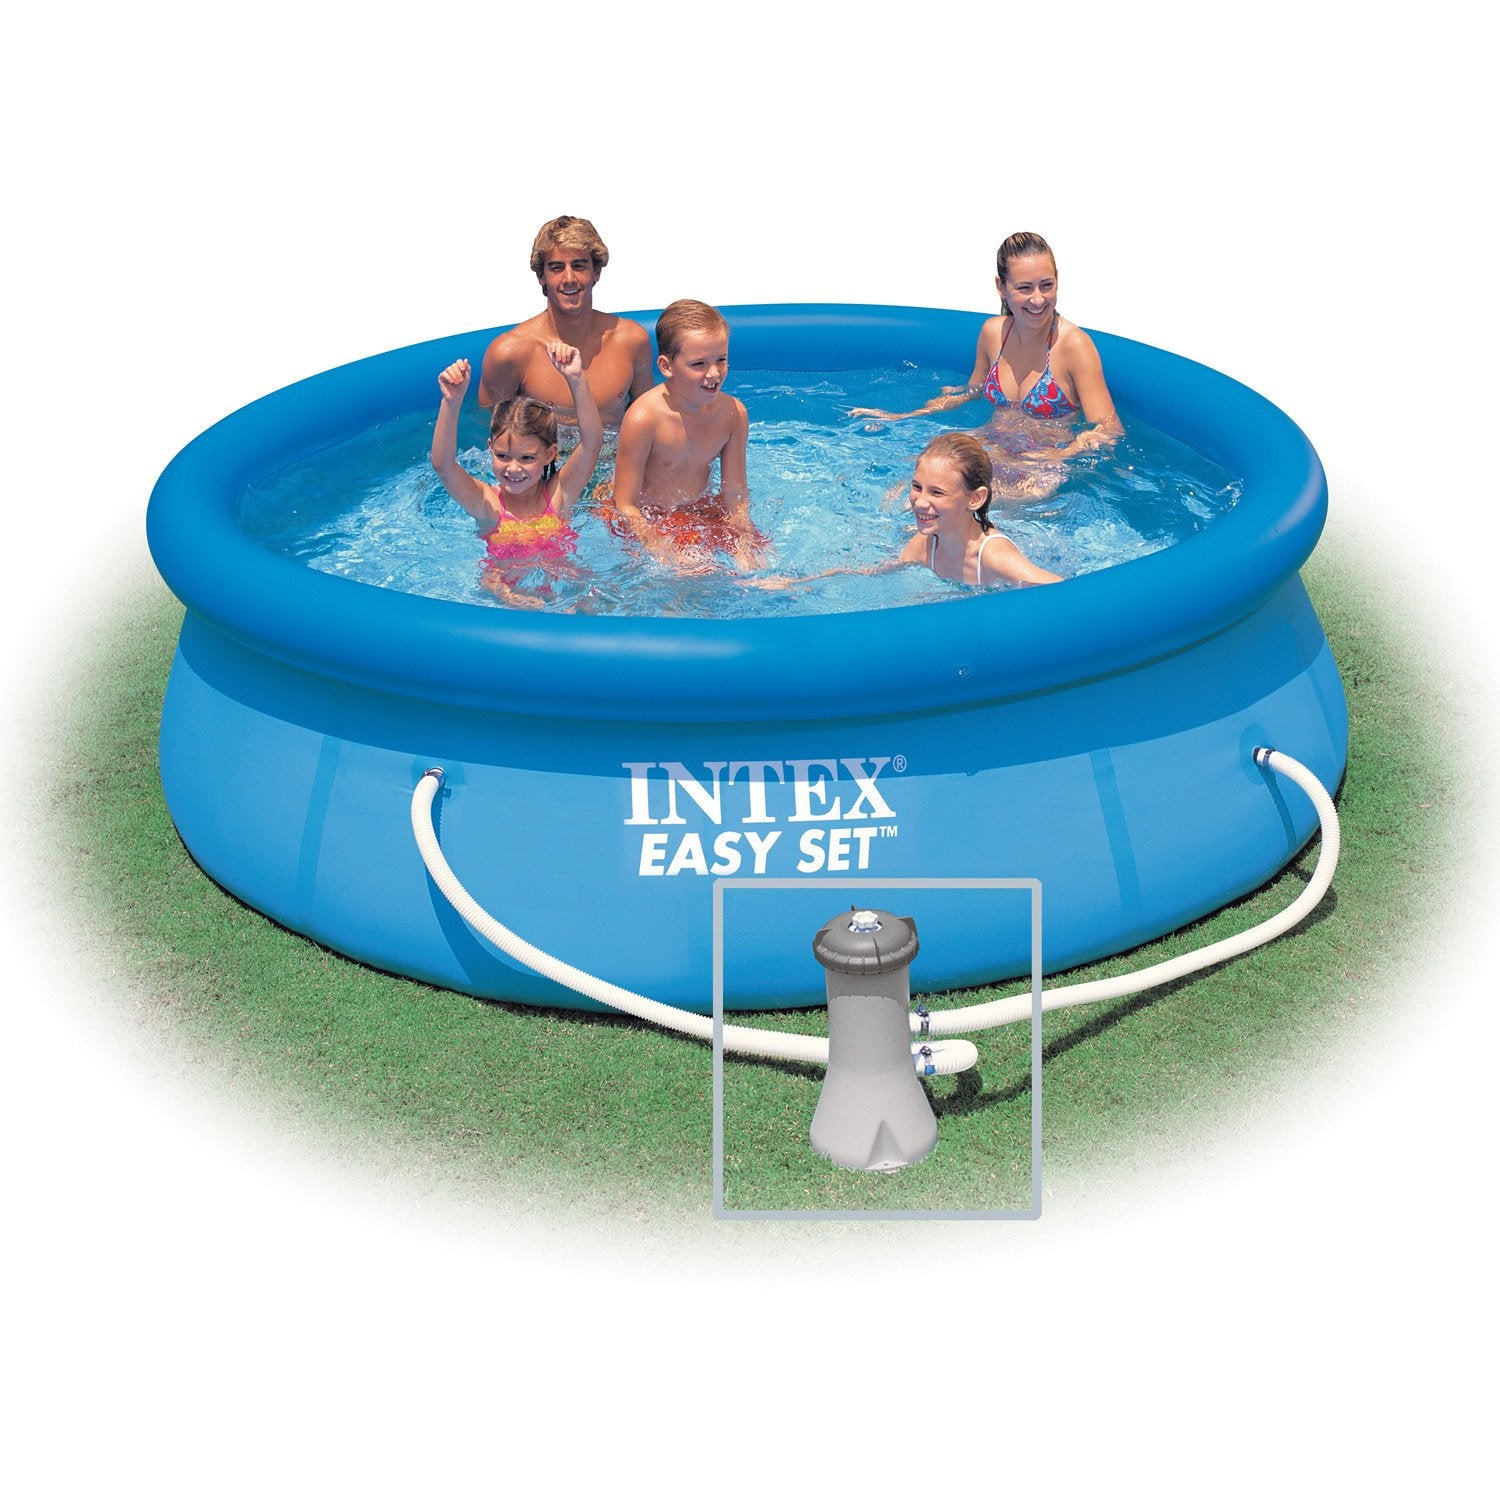 Piscine hors sol autoportante gonflable easy set intex for Piscine hors sol nortland